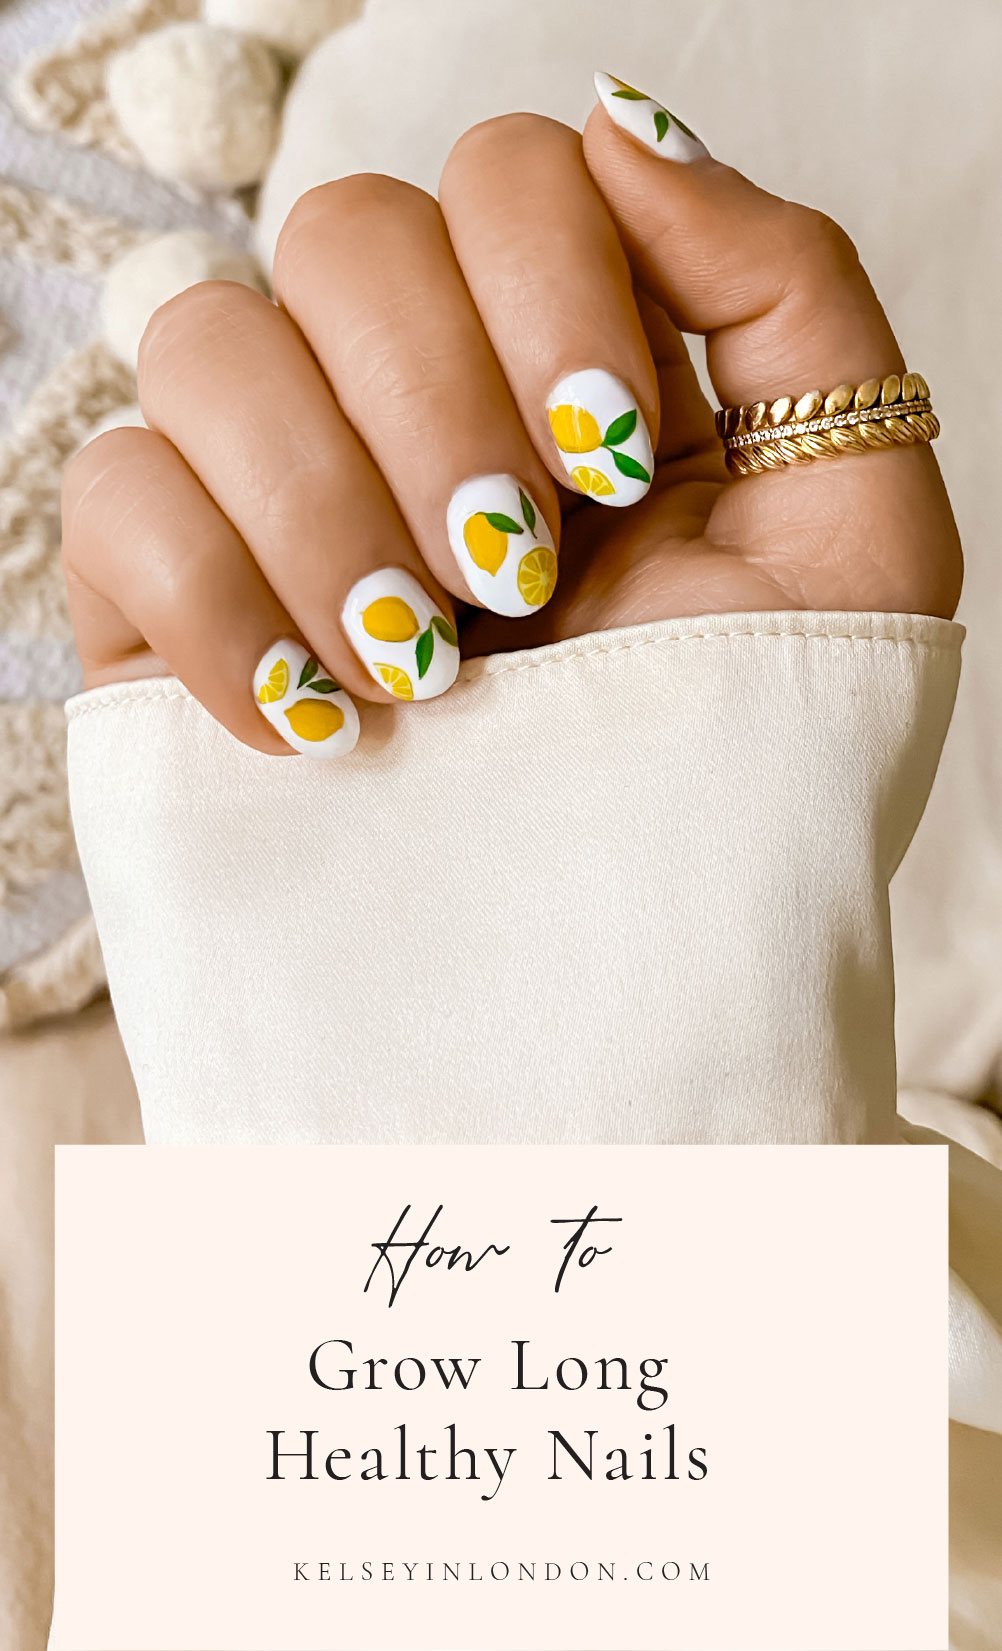 How to grow long healthy nails - DIY Gel Manicure - Nail Step-by-step Tutorial Nail Art Design Ideas @kelseyinlondon - Kelsey Heinrichs